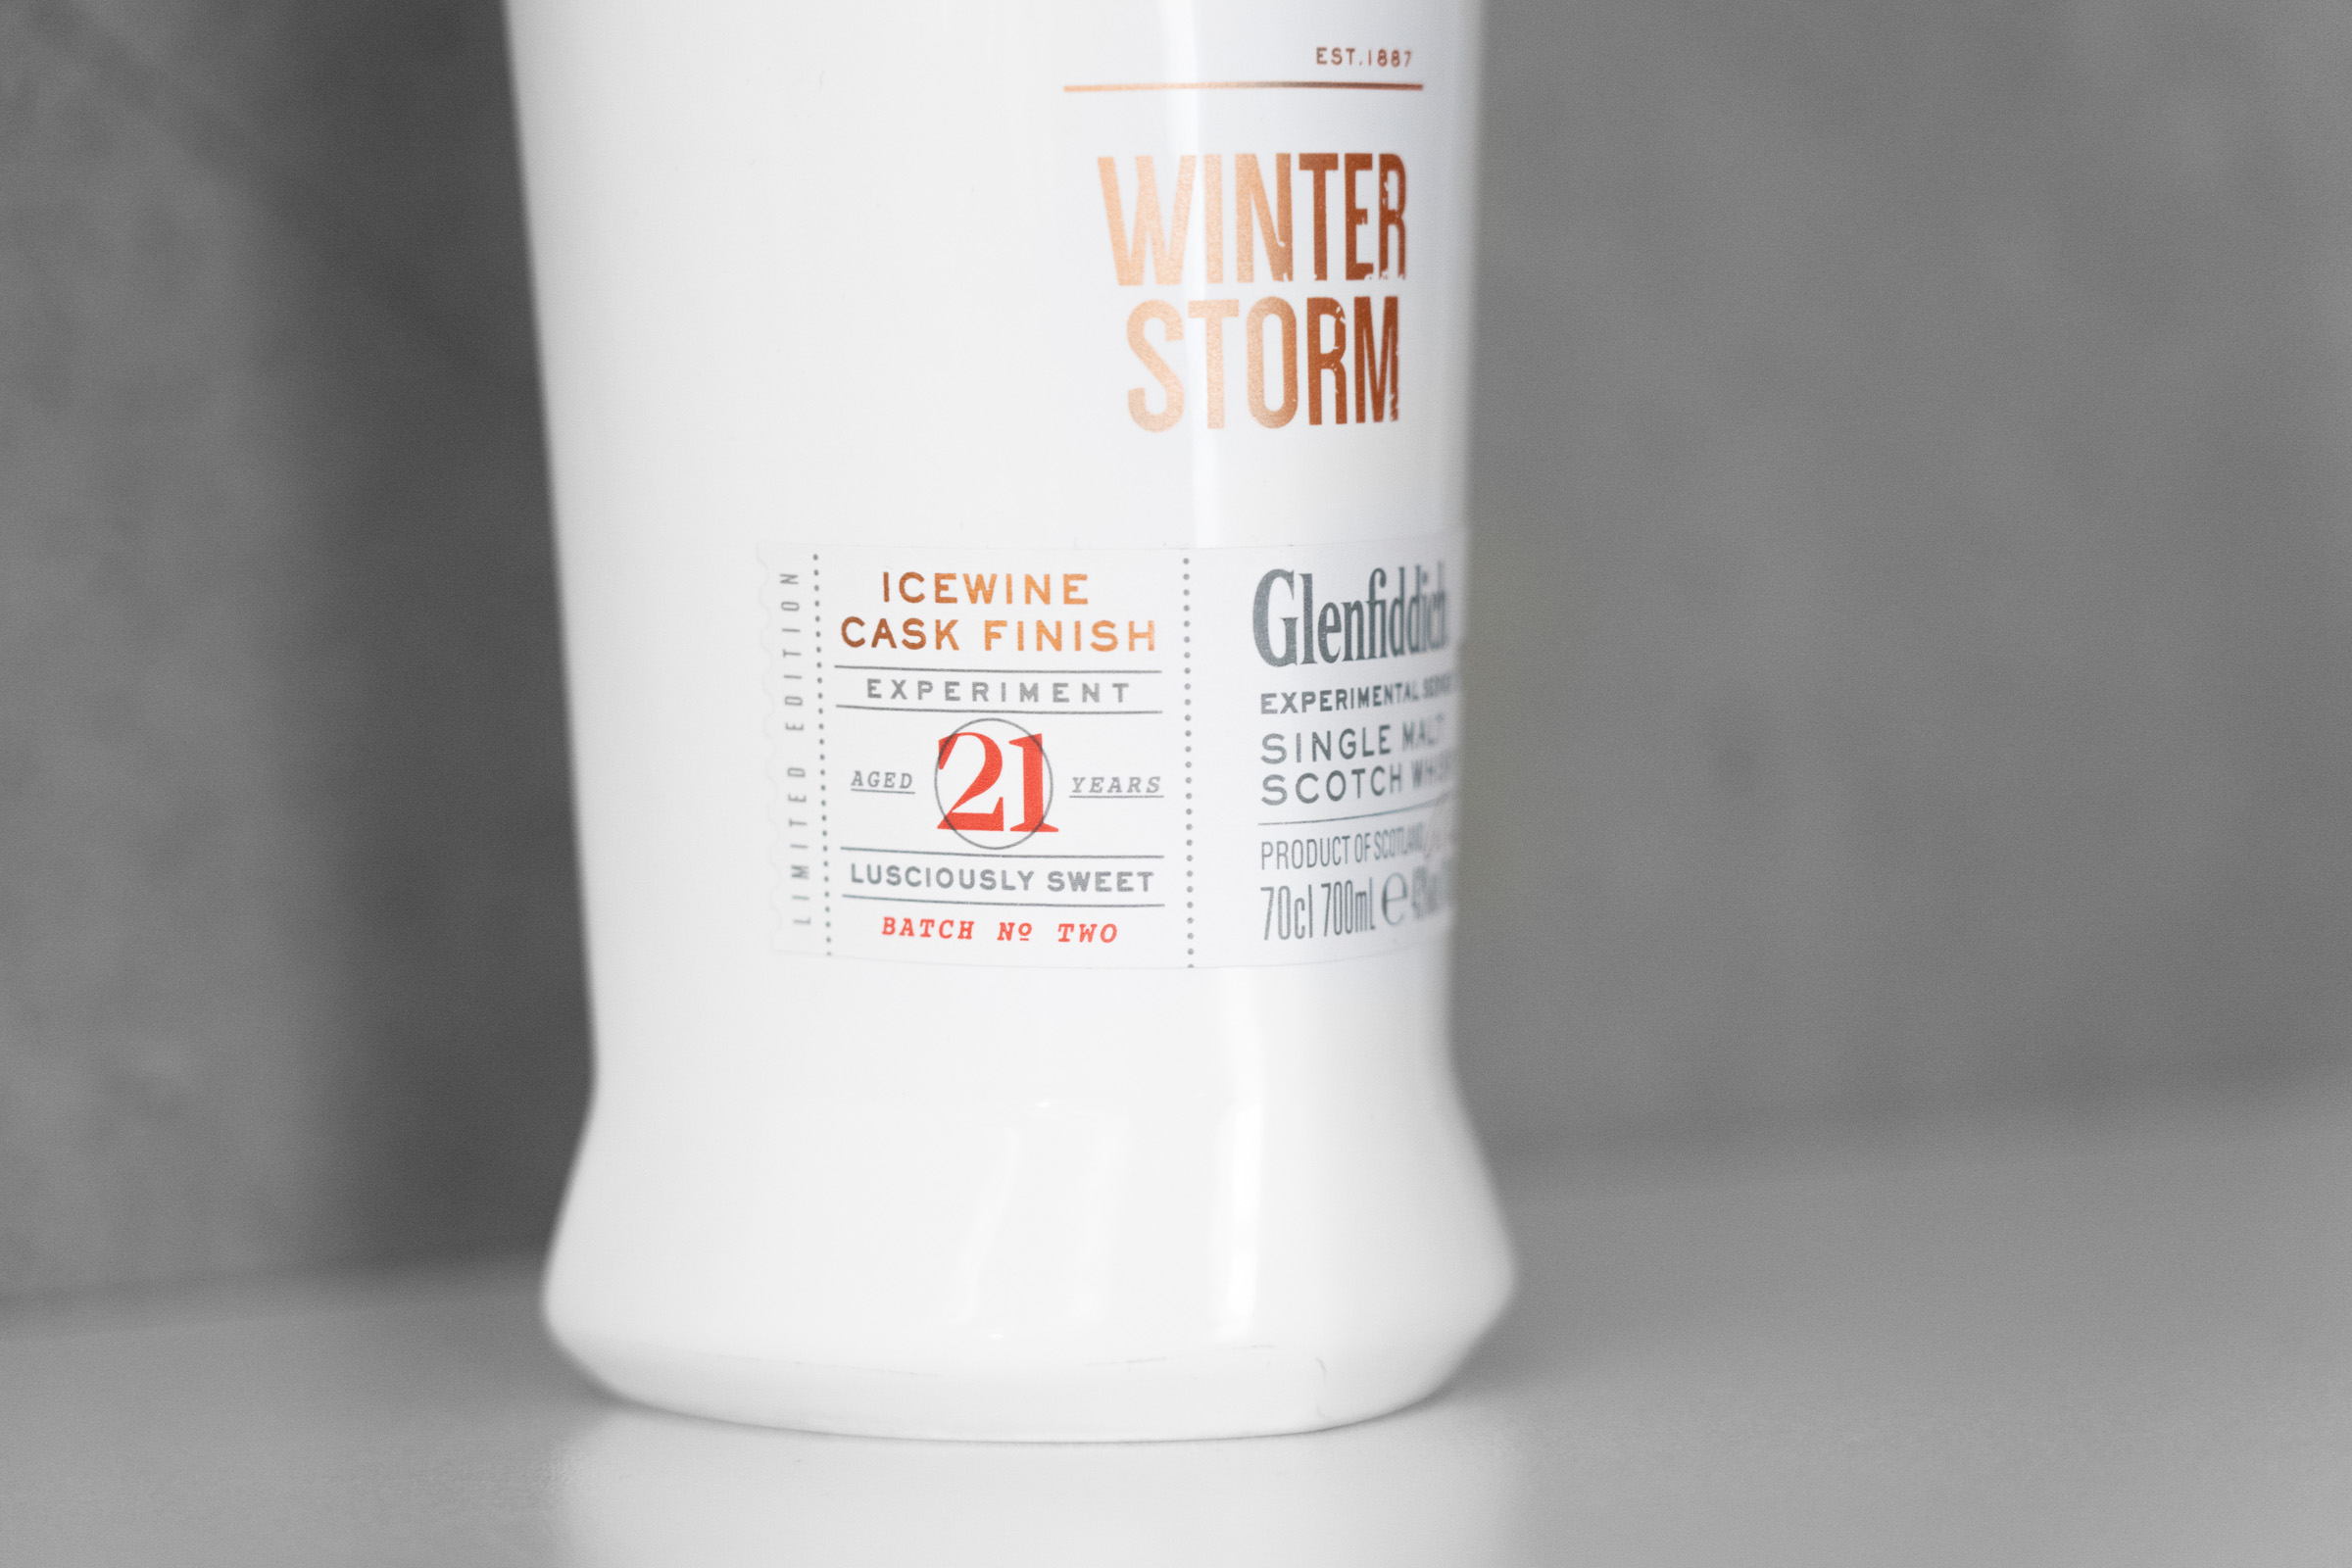 Winter Storm - Bottle Side